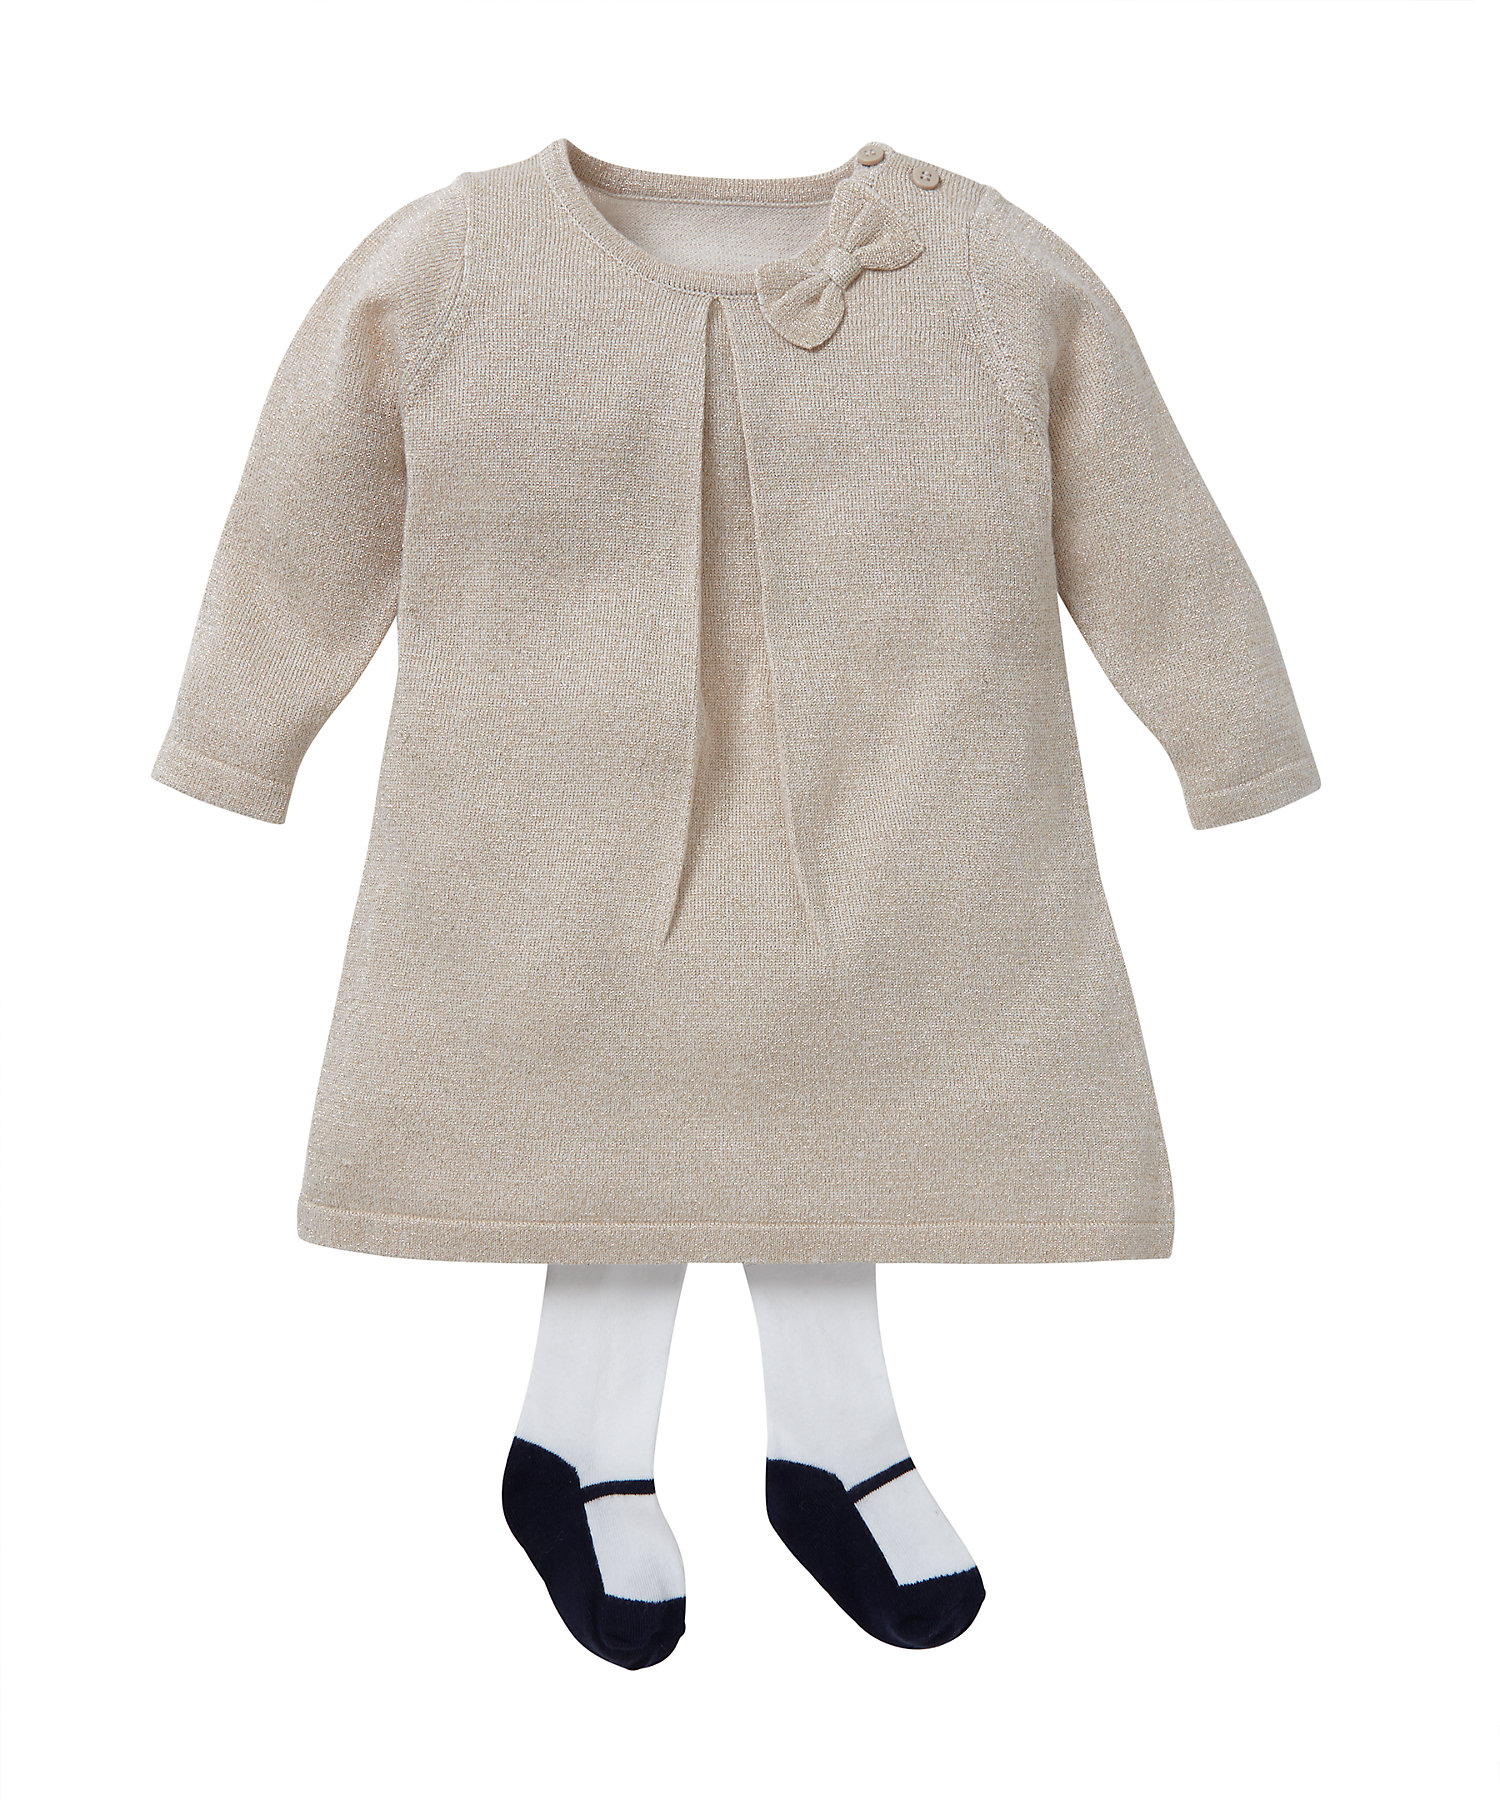 Mothercare | Girls Full Sleeves Knitted Glitter Dress And Tights Set Bow Detail - Beige